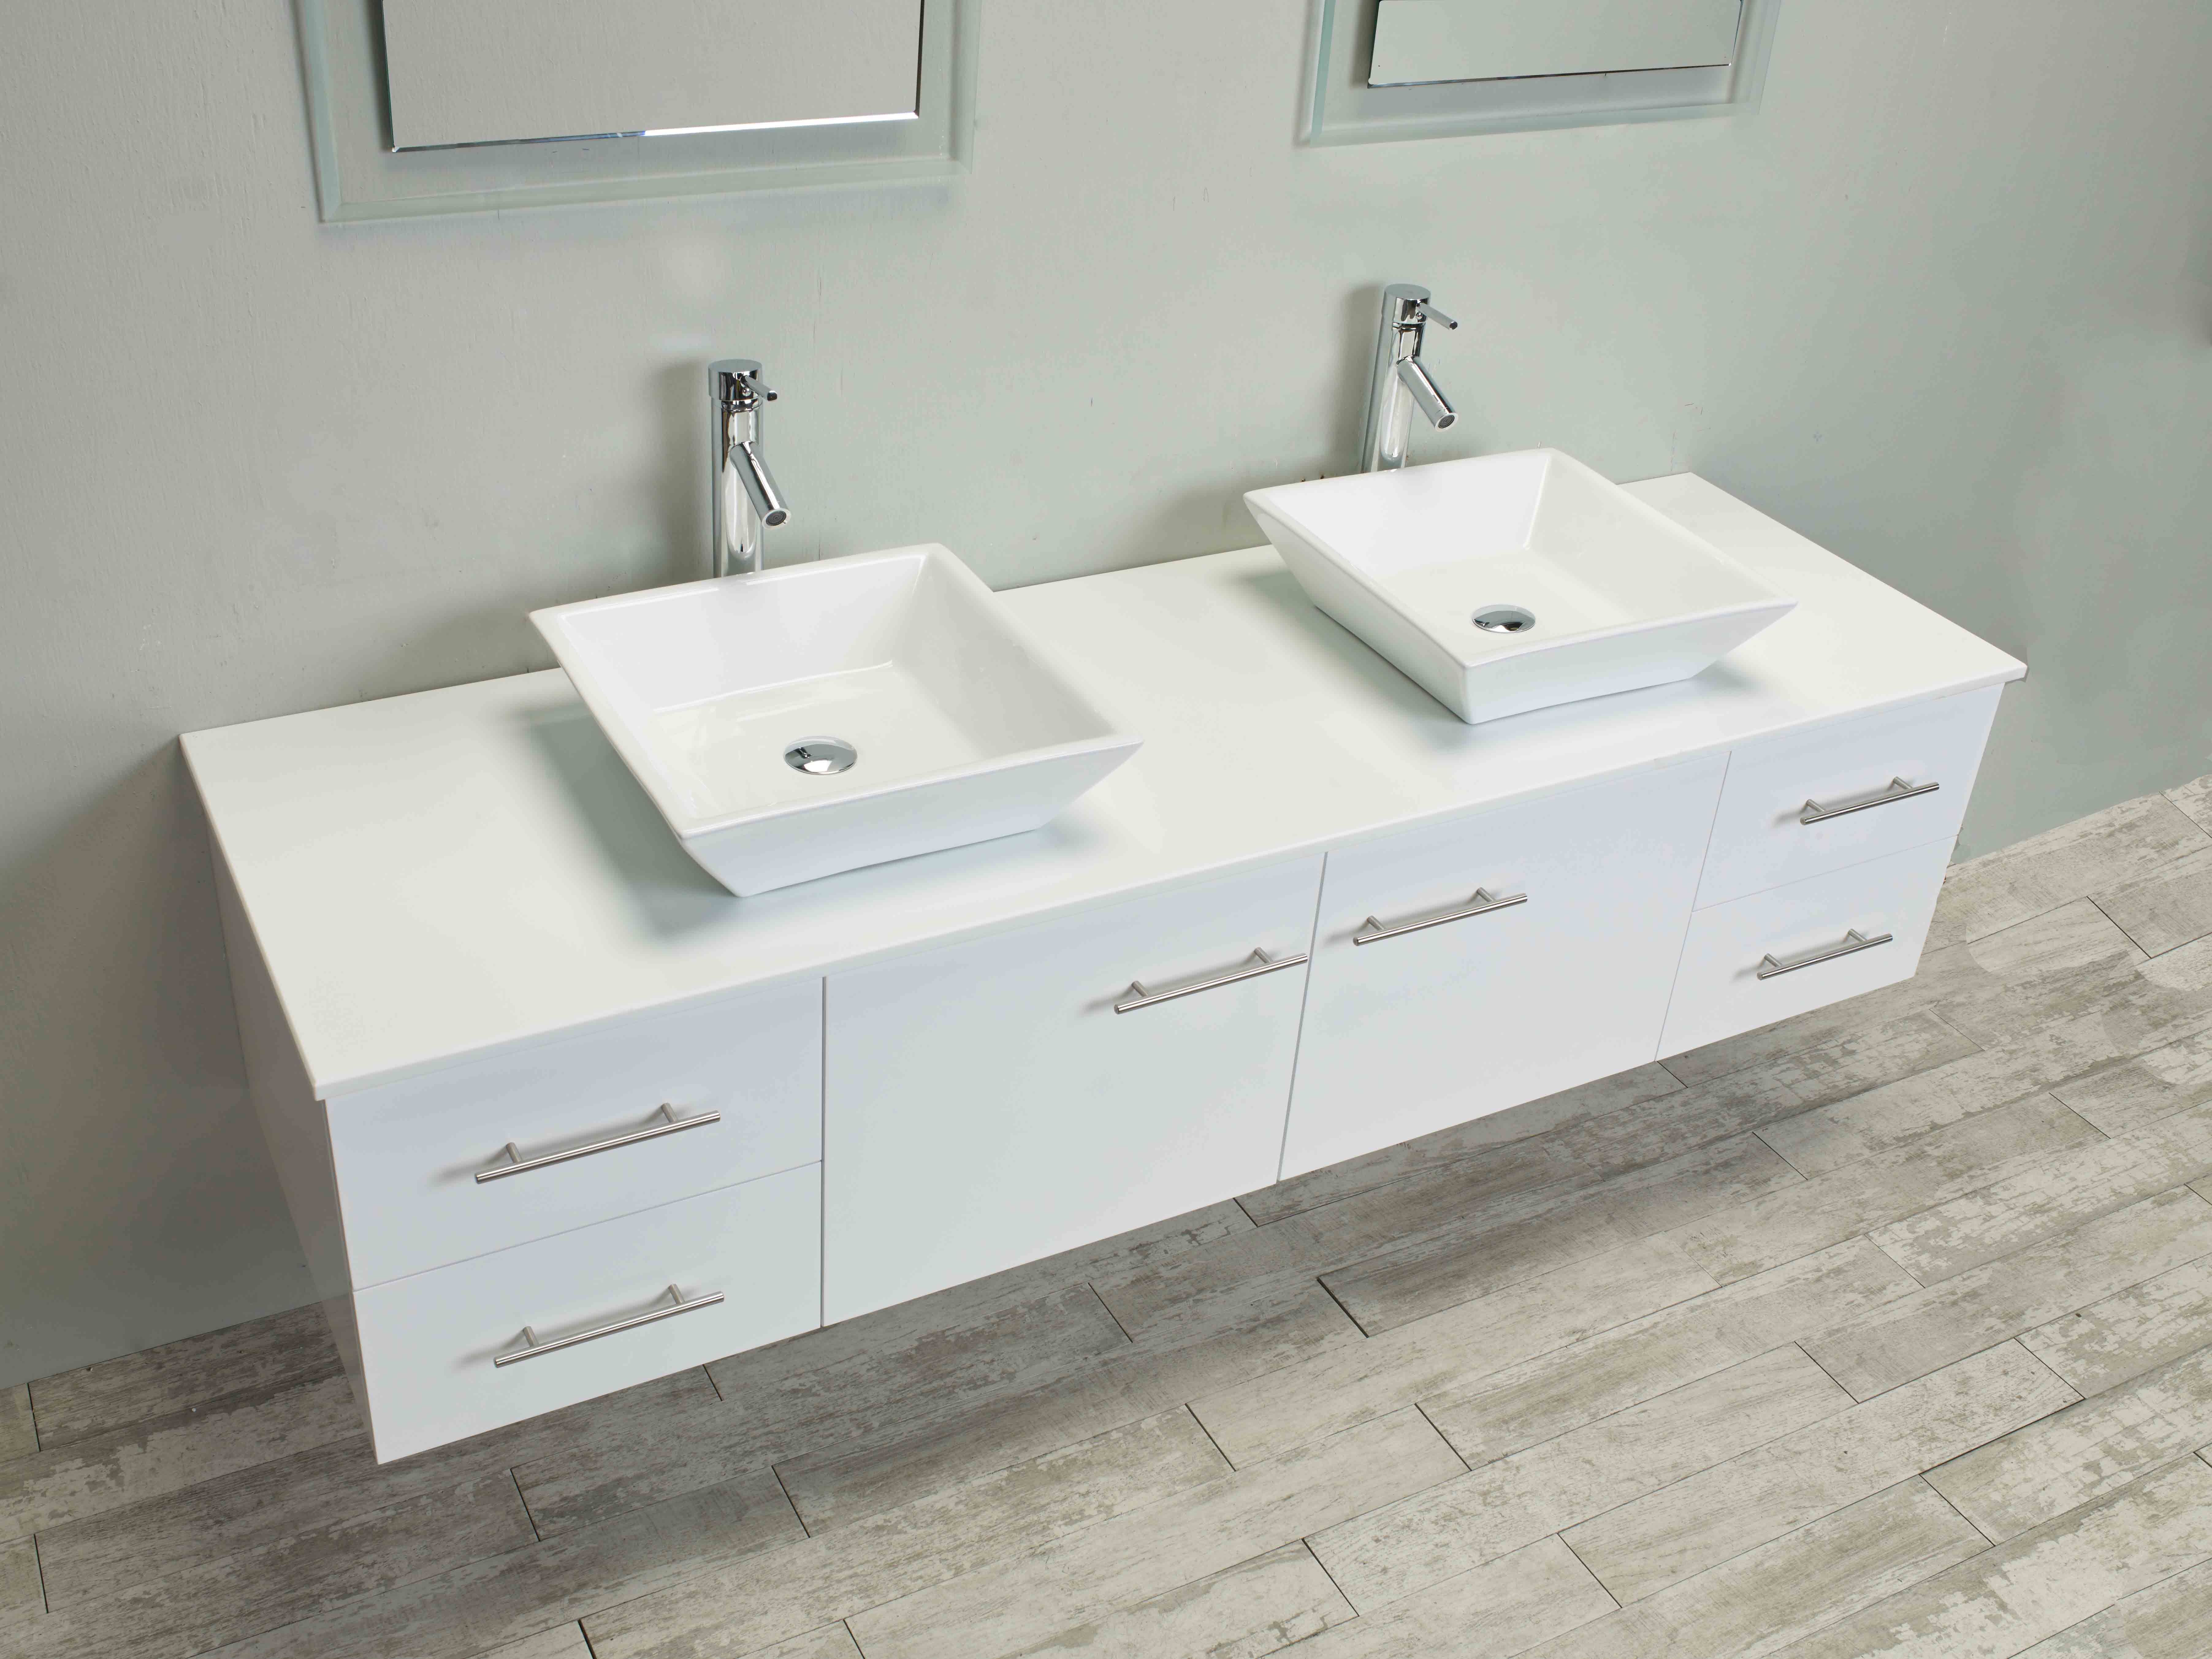 Designer Toilets And Sinks Totti Wave 60 Inch White Modern Double Sink Bathroom